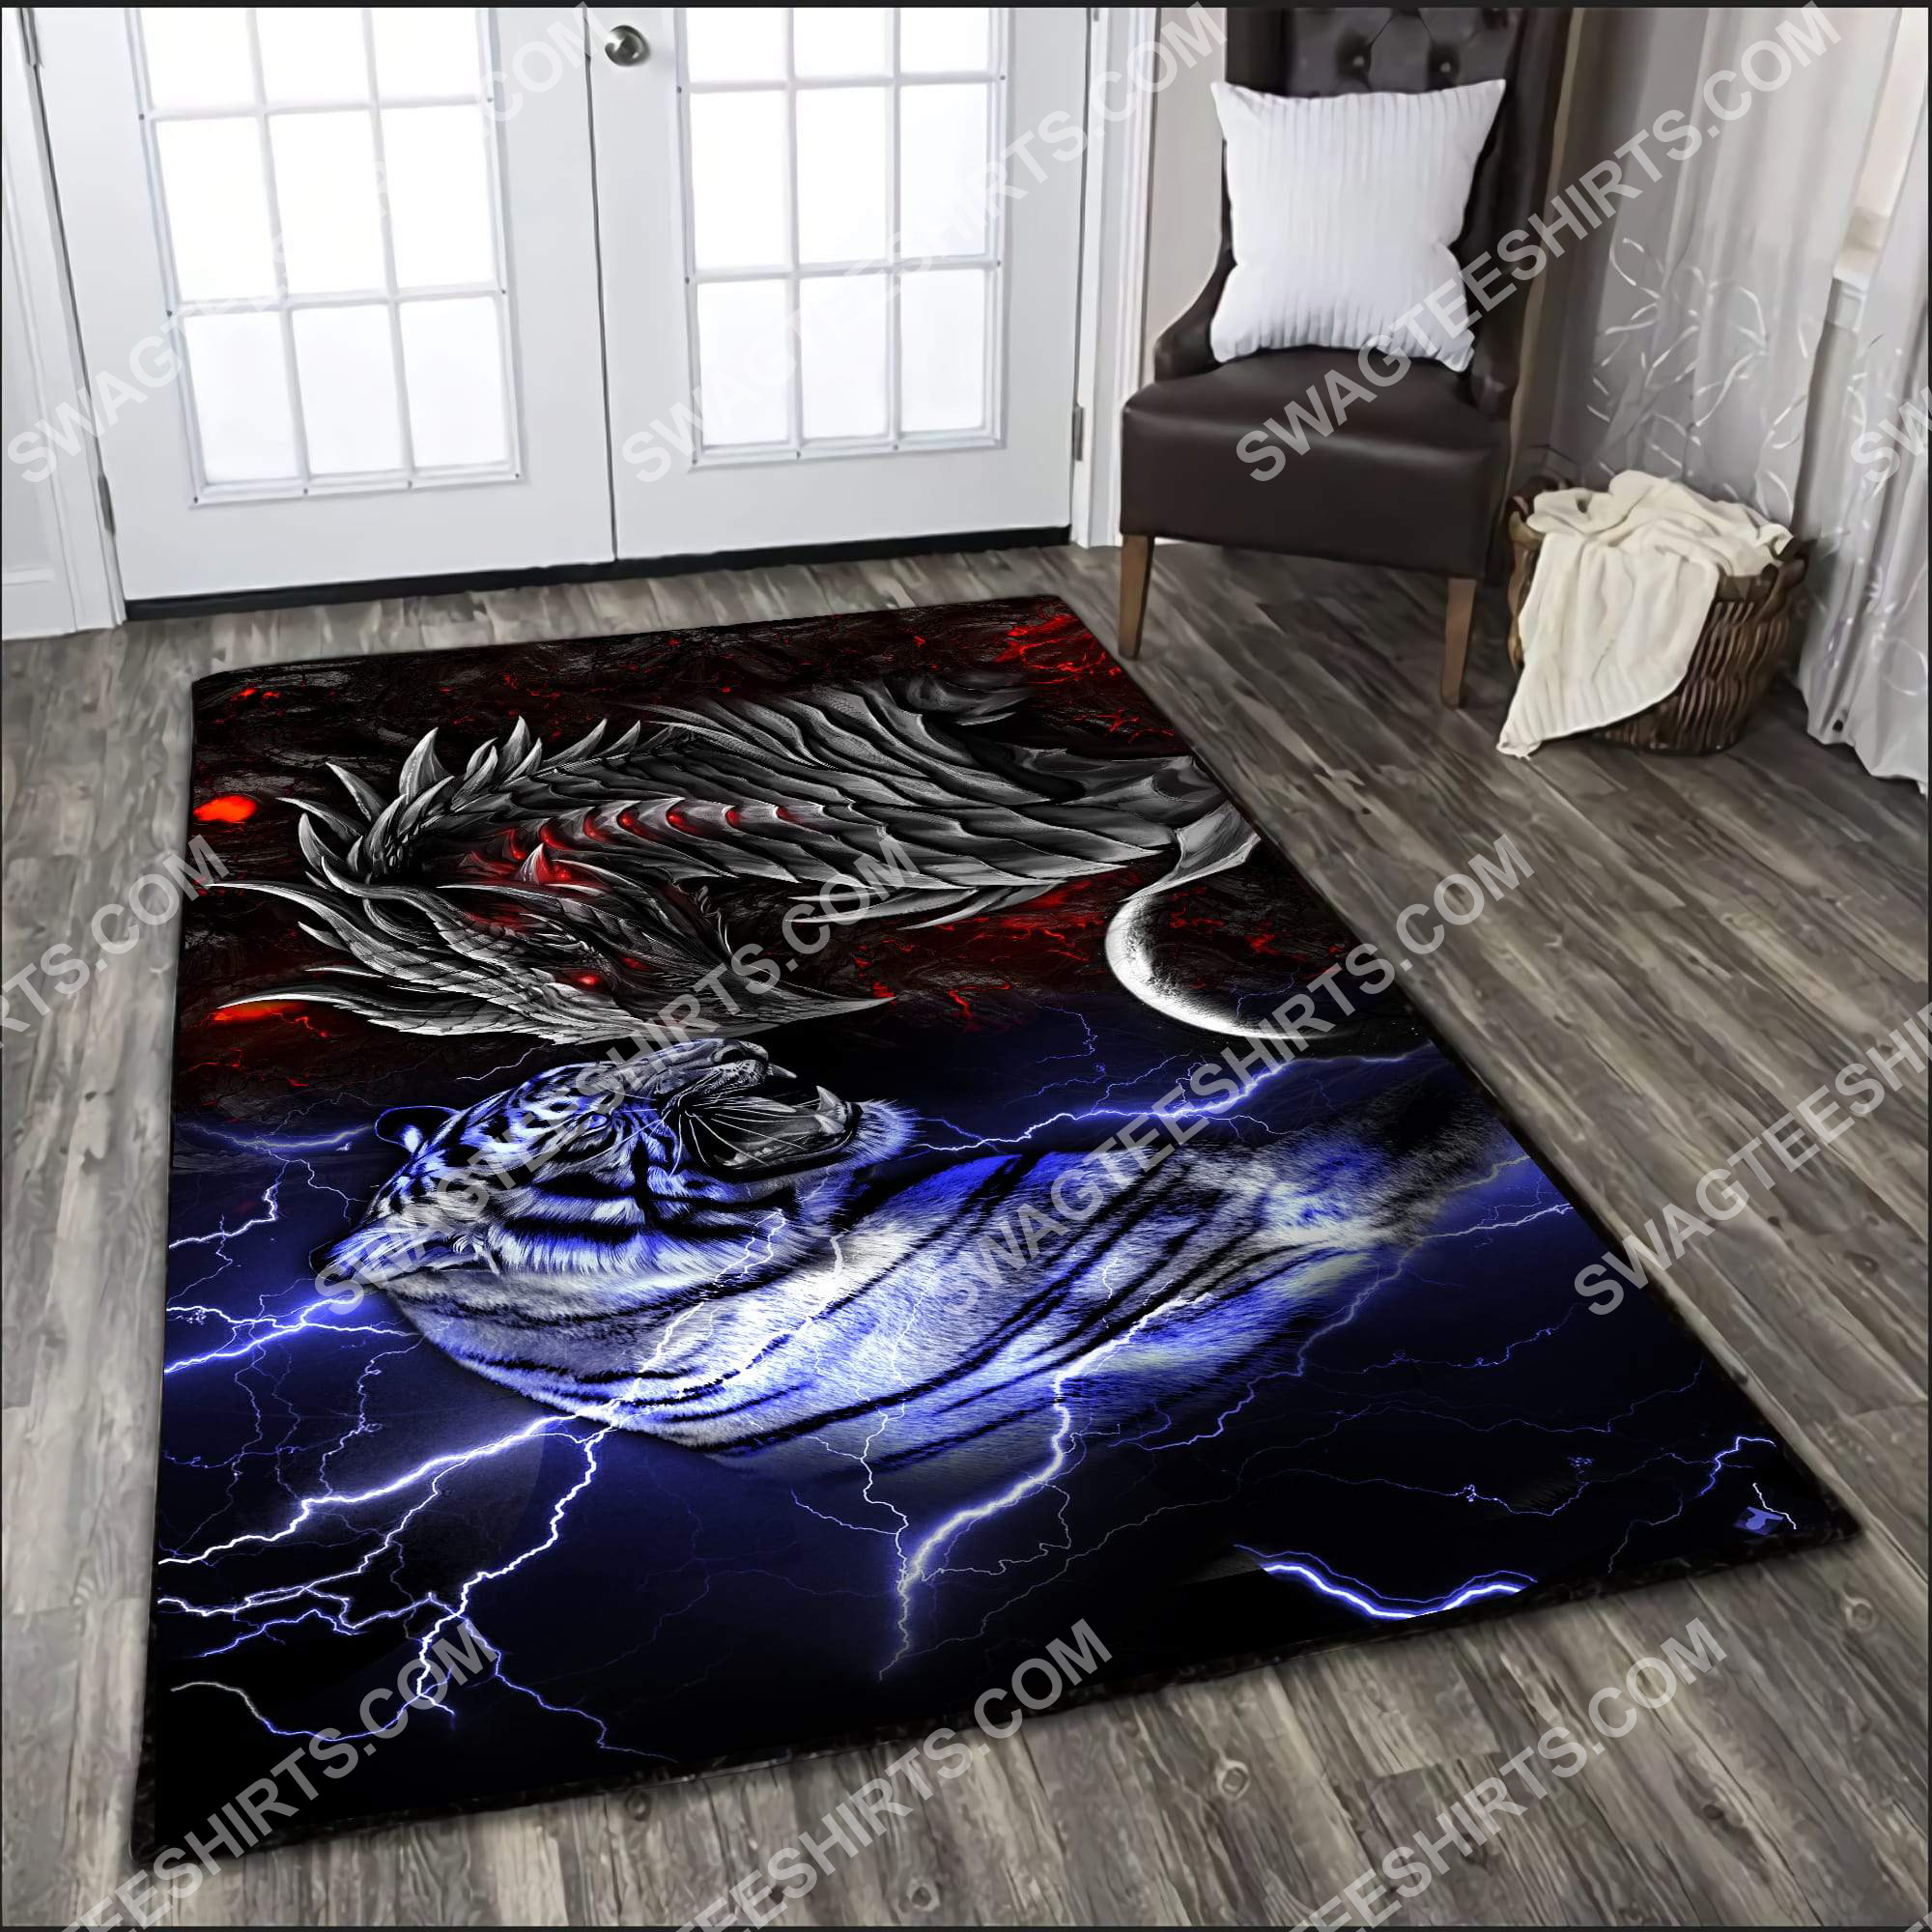 dragon and tiger fire and ice all over printed rug 3(1) - Copy